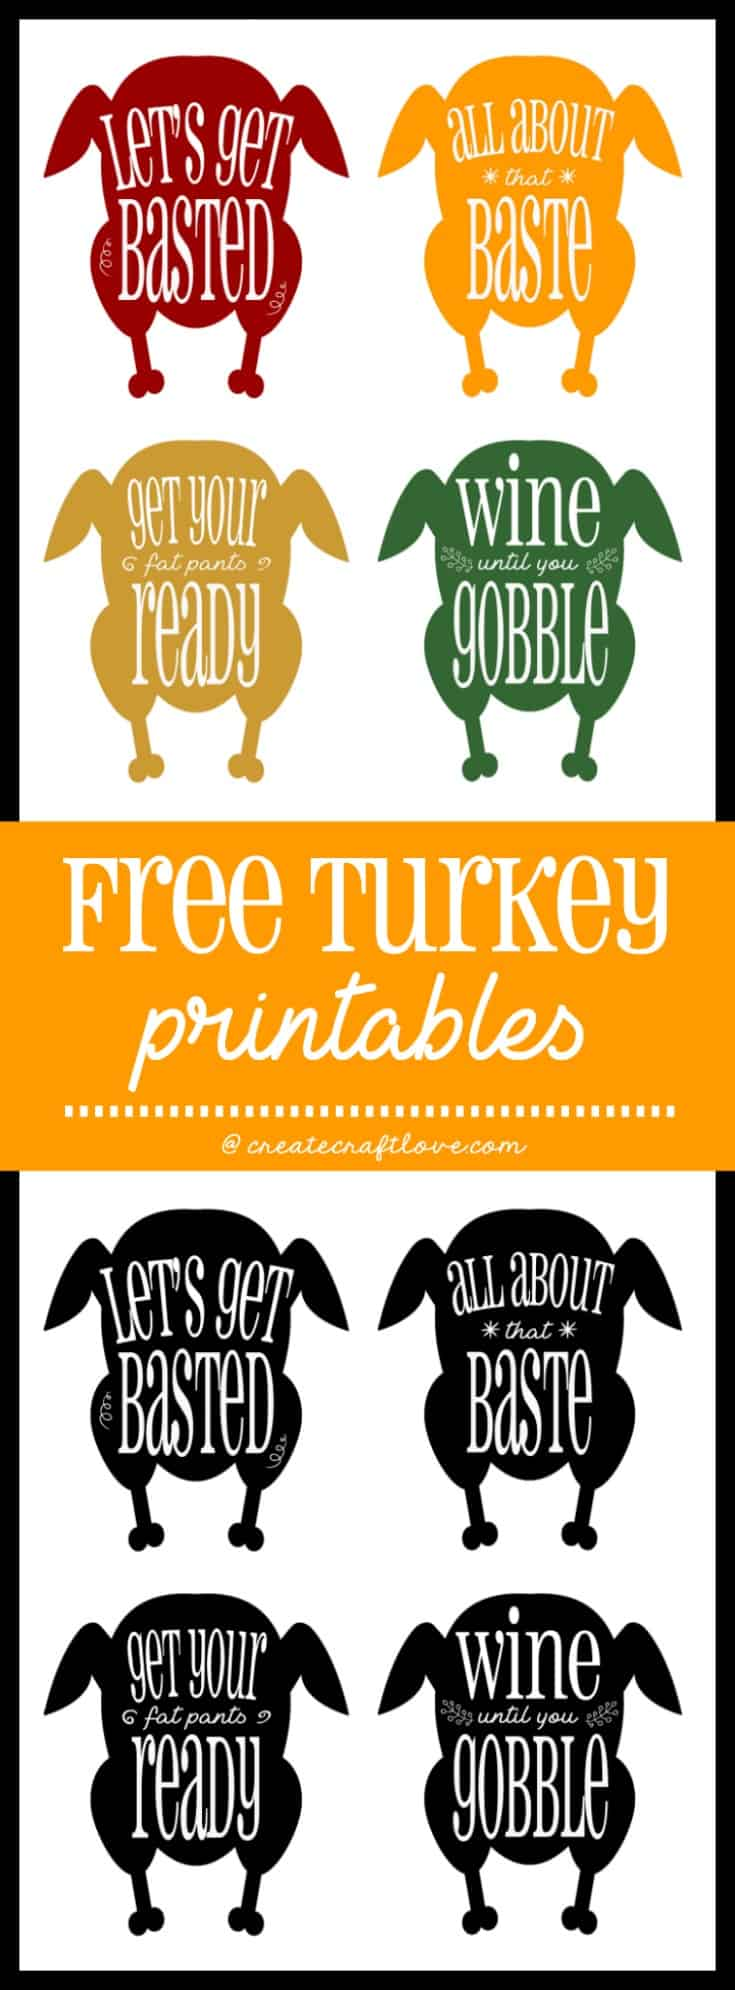 These Turkey Printables are hysterical! Download yours for free!